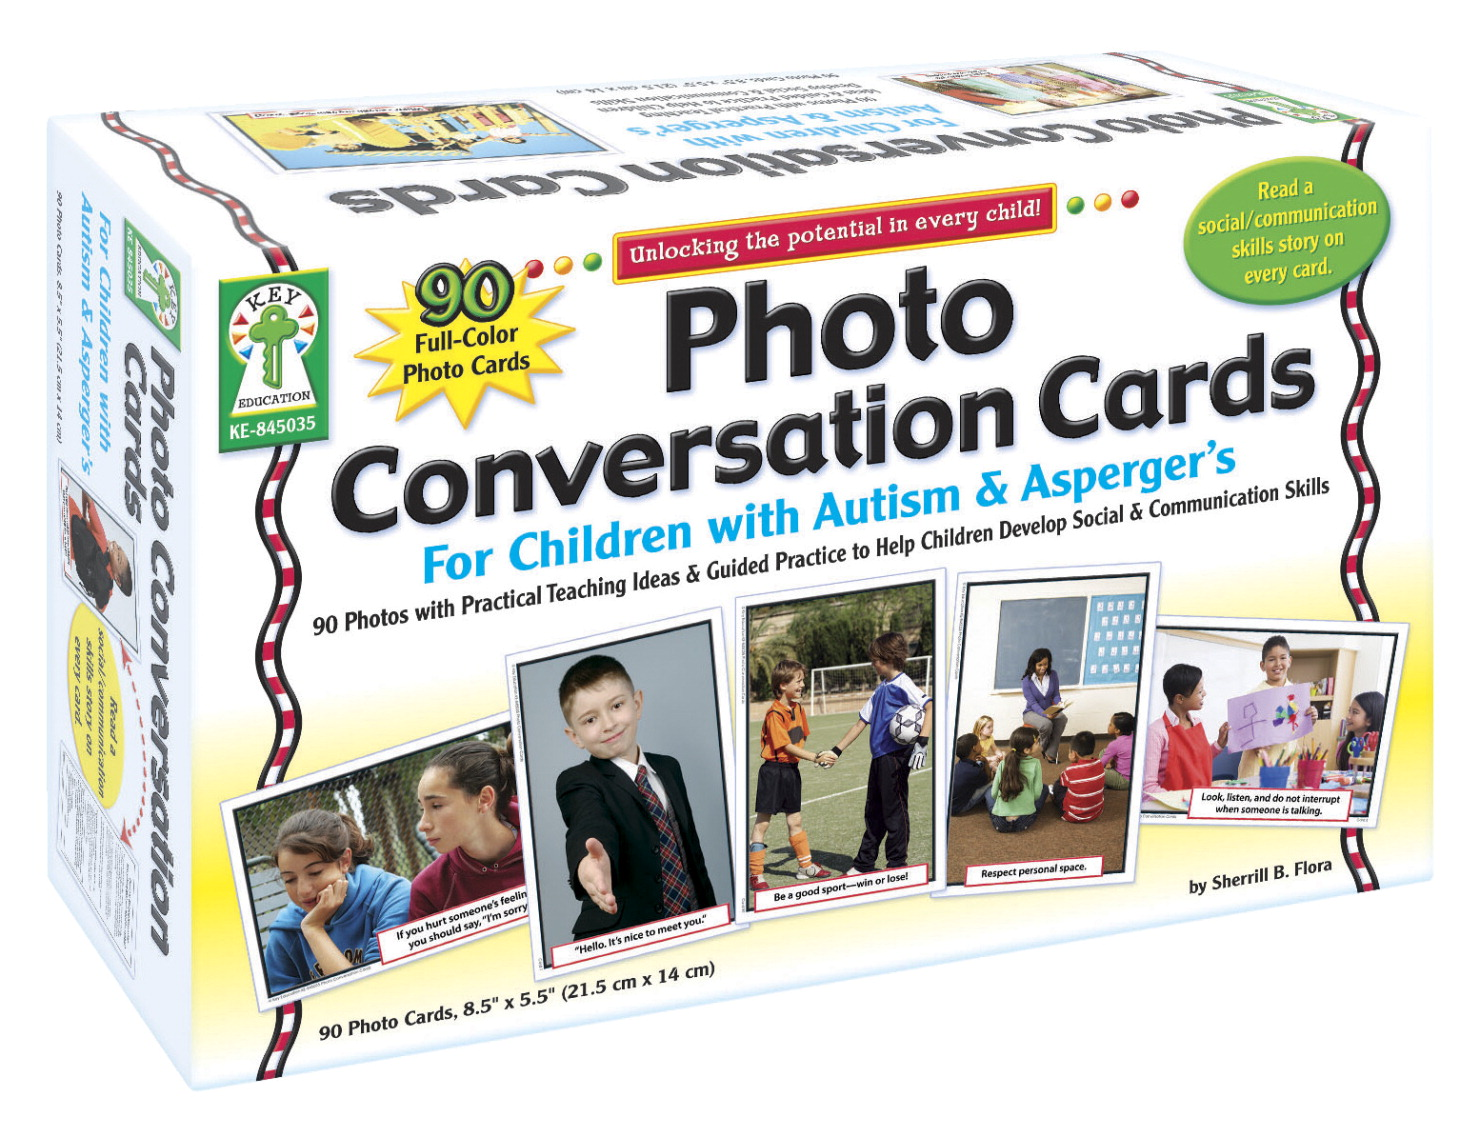 Carson-Dellosa Photo Conversation Cards for Children with Autism and Asperger's